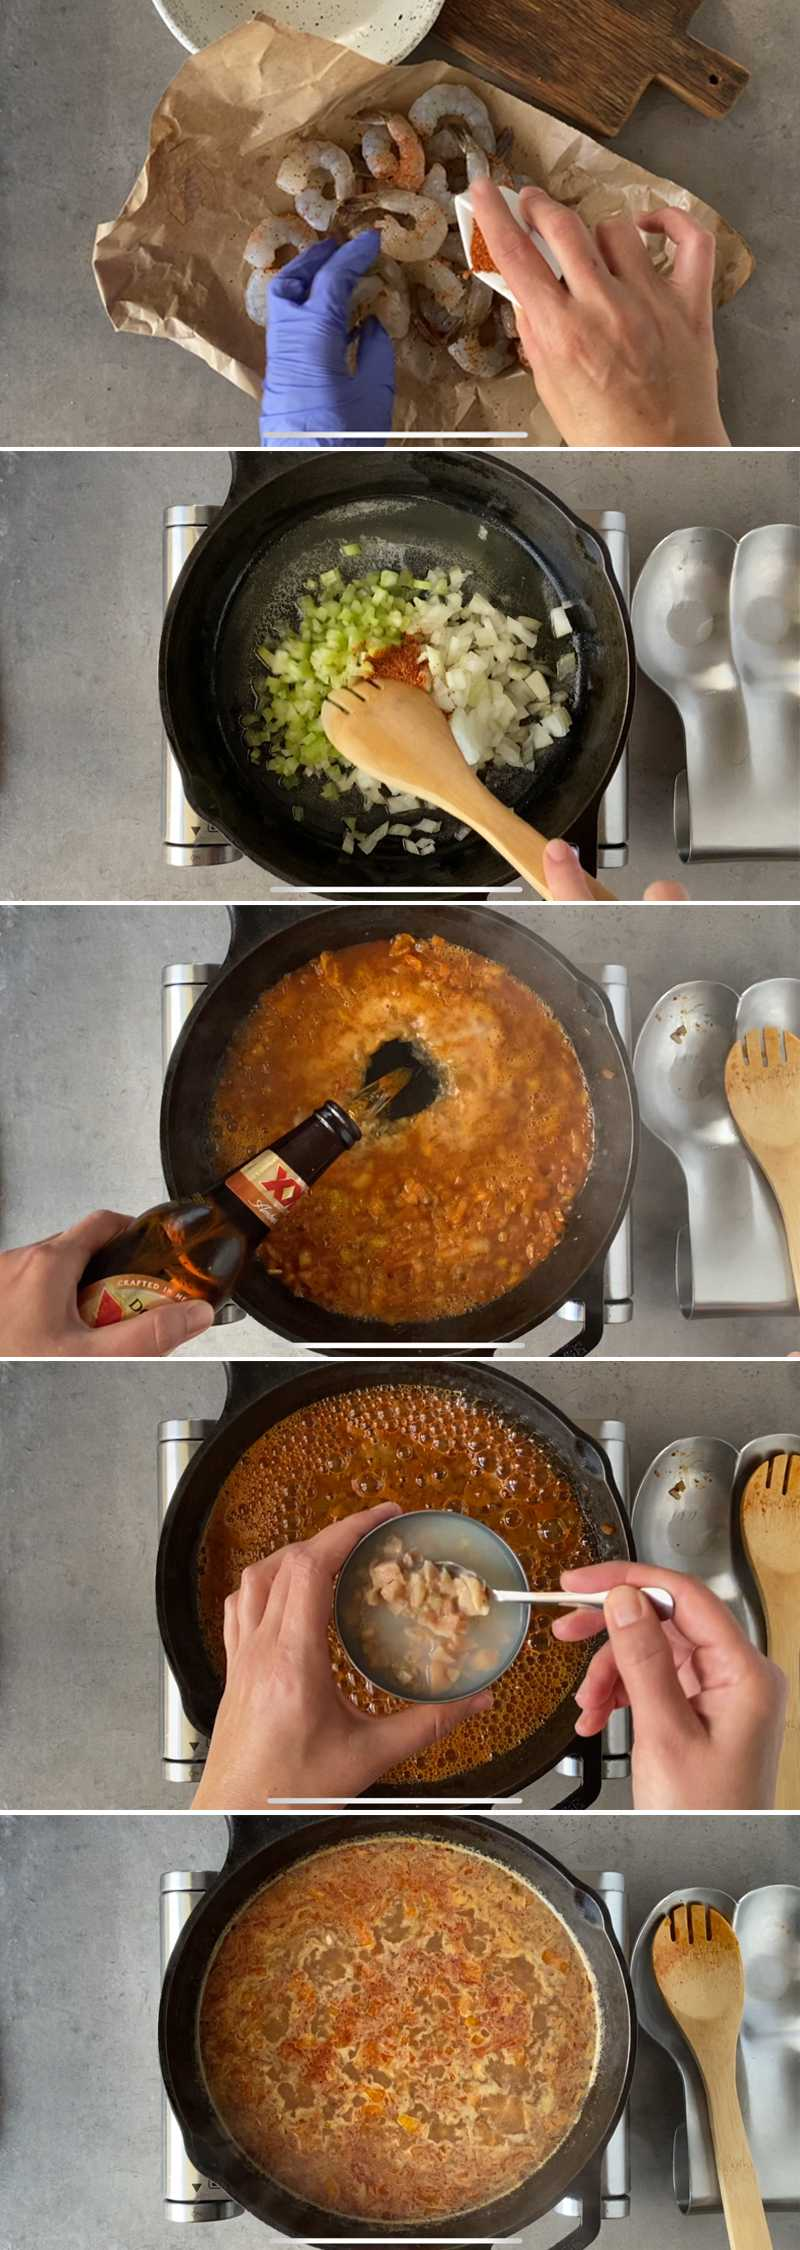 Image grid with step to make spicy shrimp in skillet with beer sauce a la clamato.